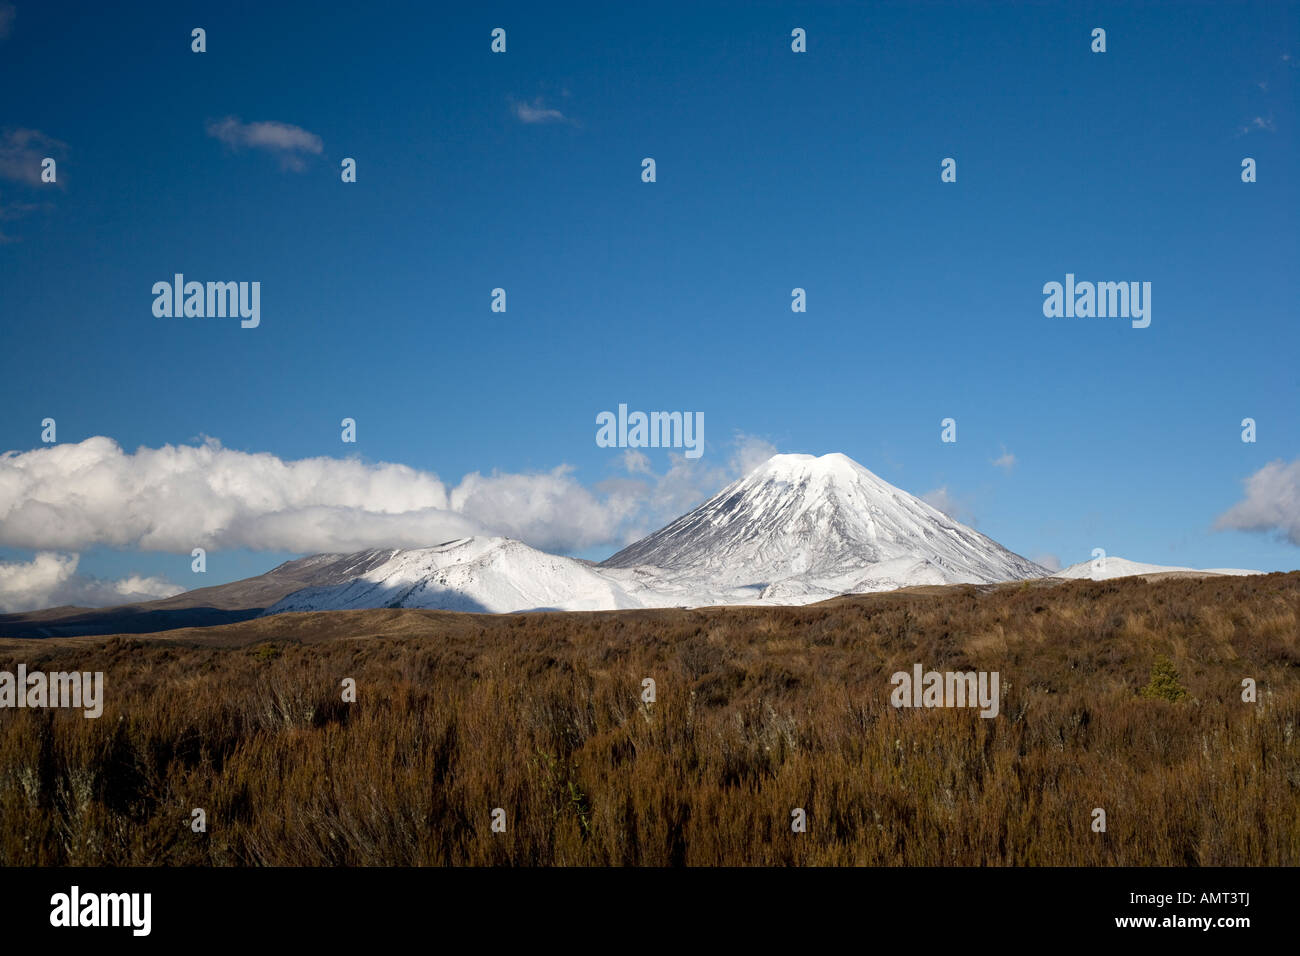 View of a snow covered Mount Ngauruhoe volcano, New Zealand Stock Photo